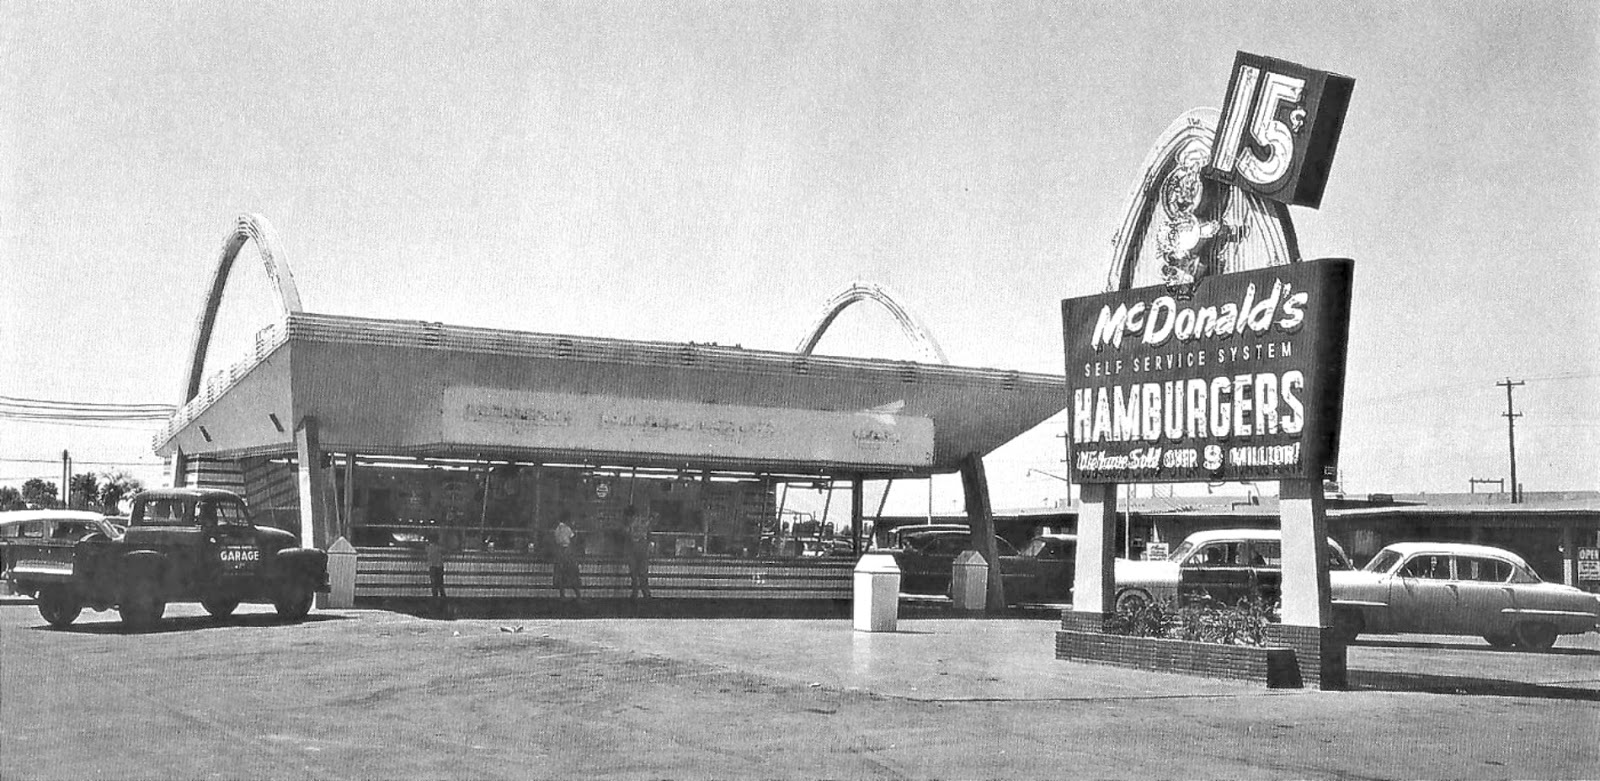 "The McDonald's building is bookended by two giant arches. A large free-standing sing in front of the building read ""15 cents; McDonald's self service system Hamburgers; welcome sold over 9 million."" The sign has only a single arch."